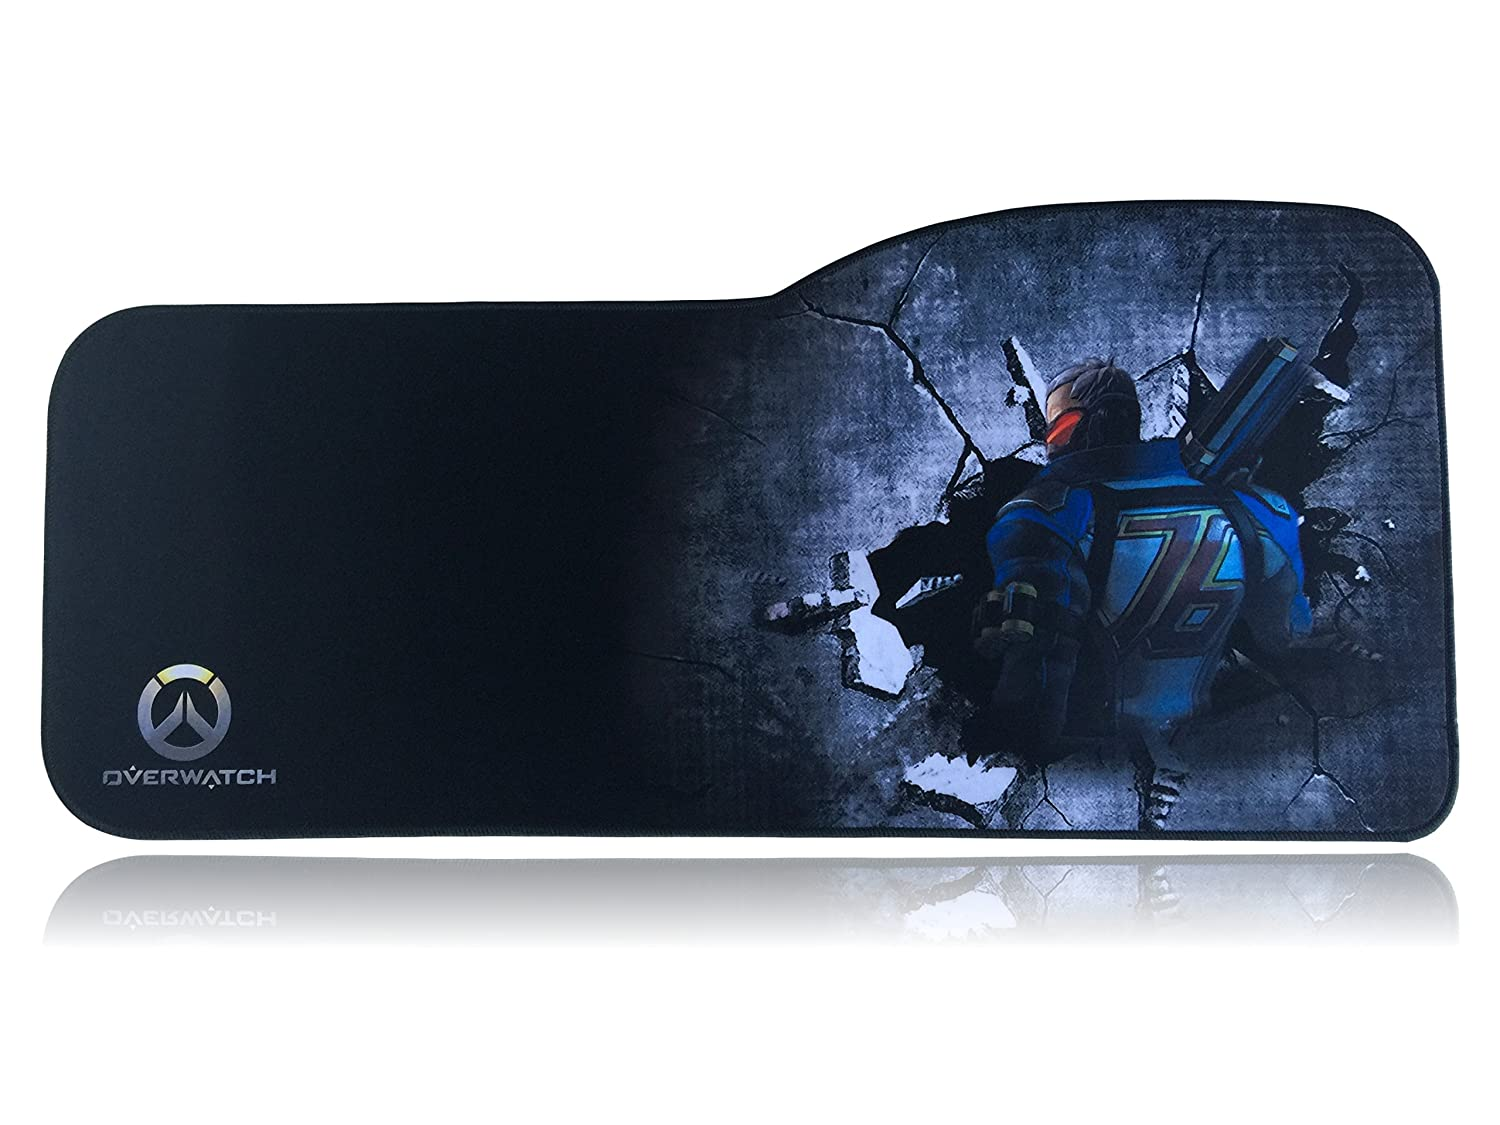 World of Warcraft Extended Size Custom Gaming Mouse Pad - Anti Slip Rubber - Stitched Edges - 28.74 x 13 x 0.12 (Blood Elf) pbpad-LL1